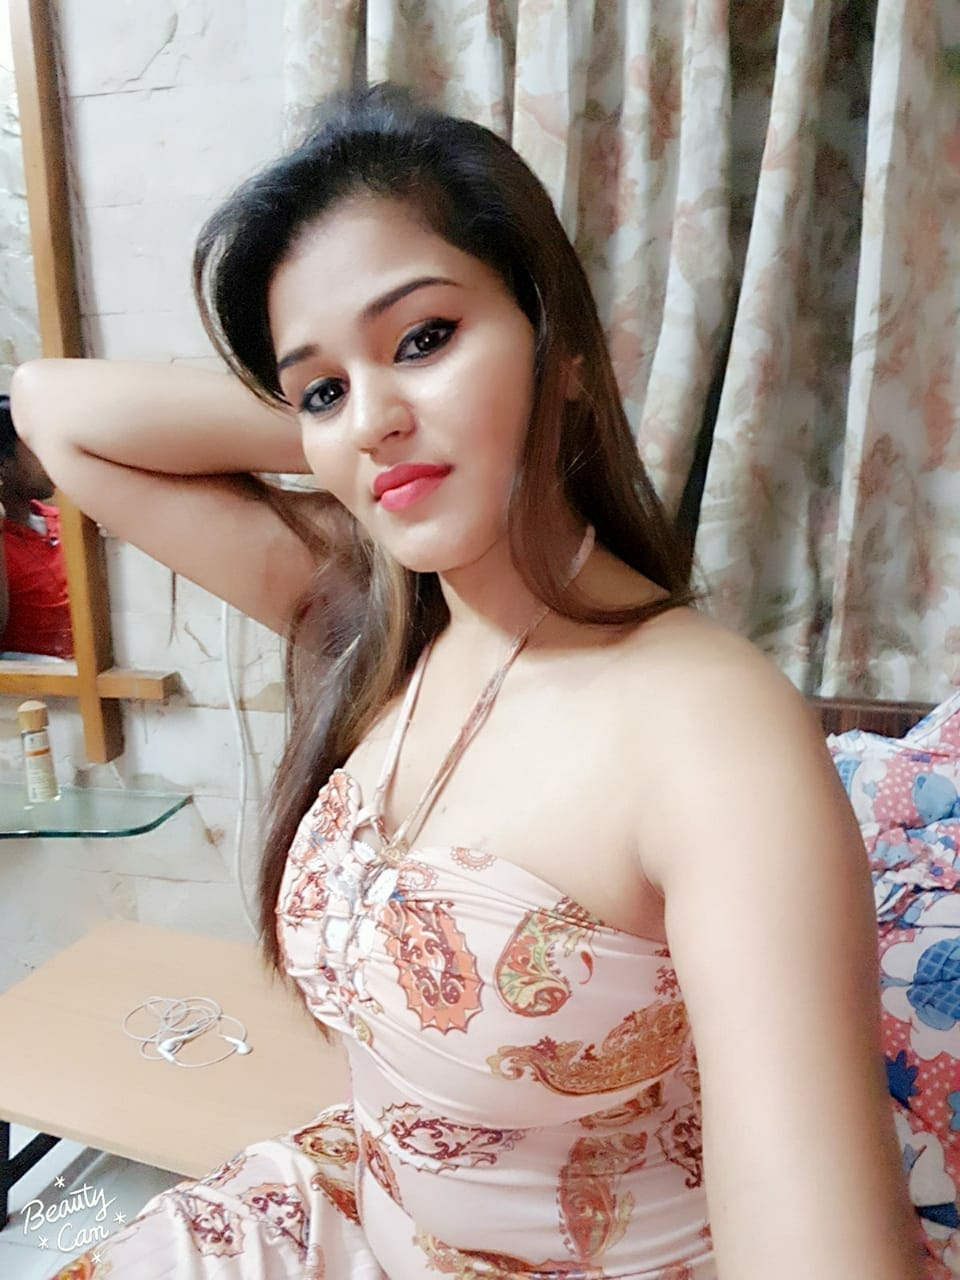 Call Girls In  in mahalaxmi